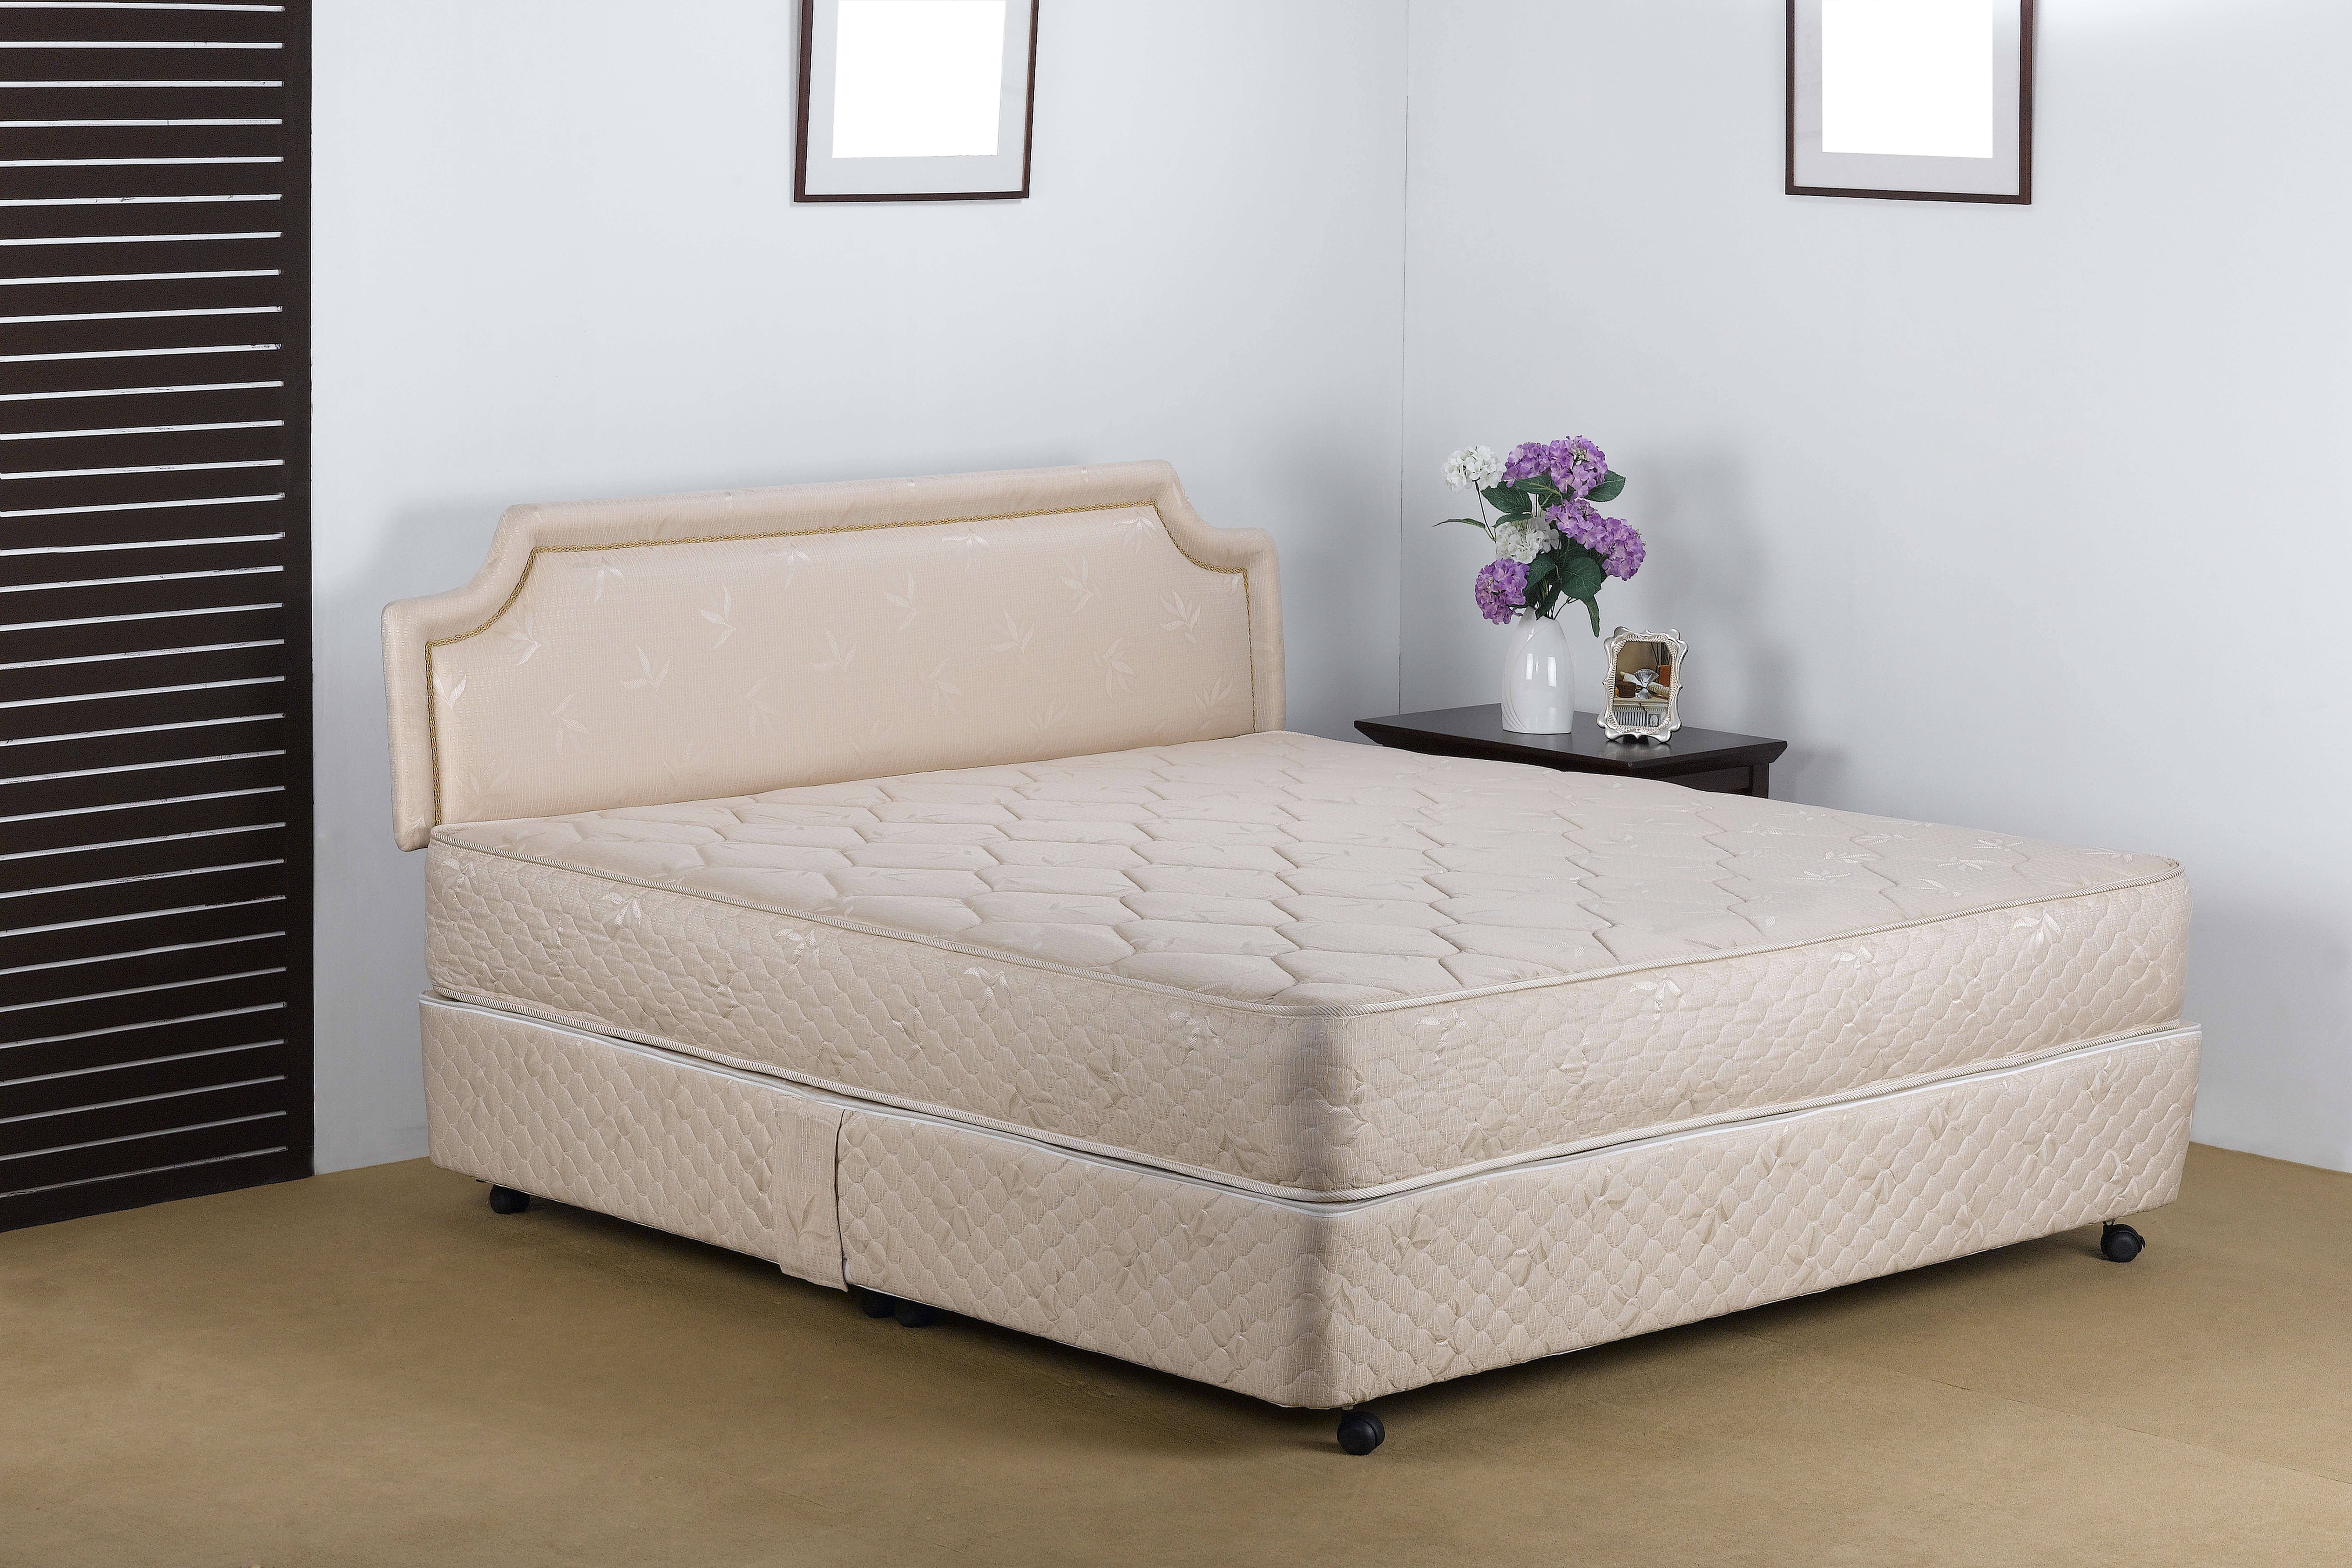 futon kingsdown buy queen best king mattress natural all reviews sale brands most durability memory costco topper sizes comfortable dunlop polyurethane spring talalay where air latex mattresses prices double electric sleep full top organic pad size to foam